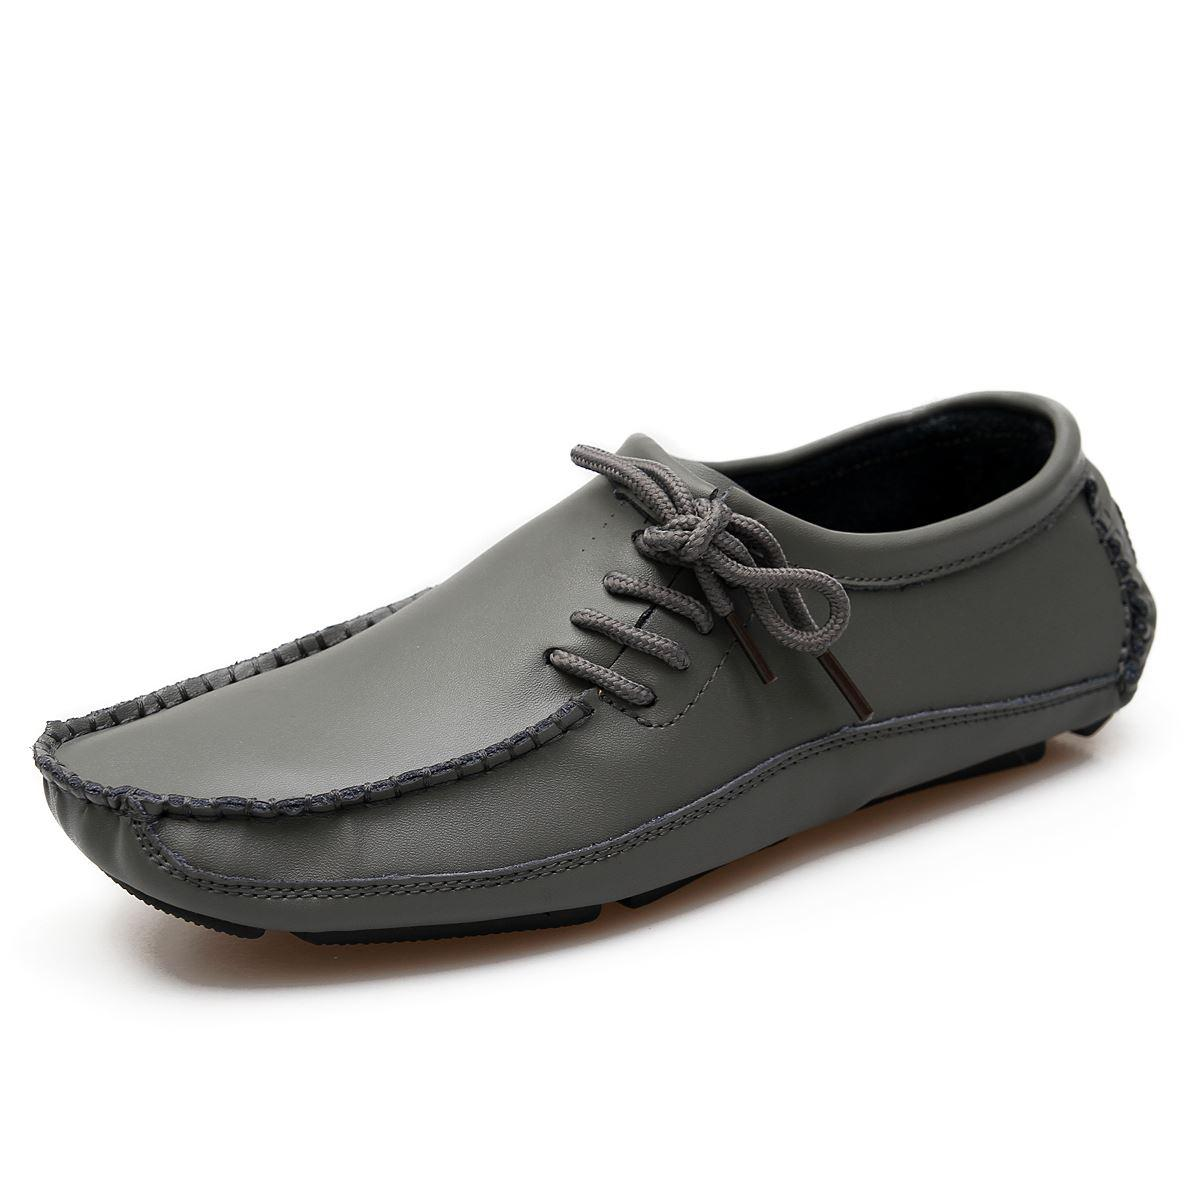 shoes men's shoes British shoes driving shoes fashion boat shoes mal